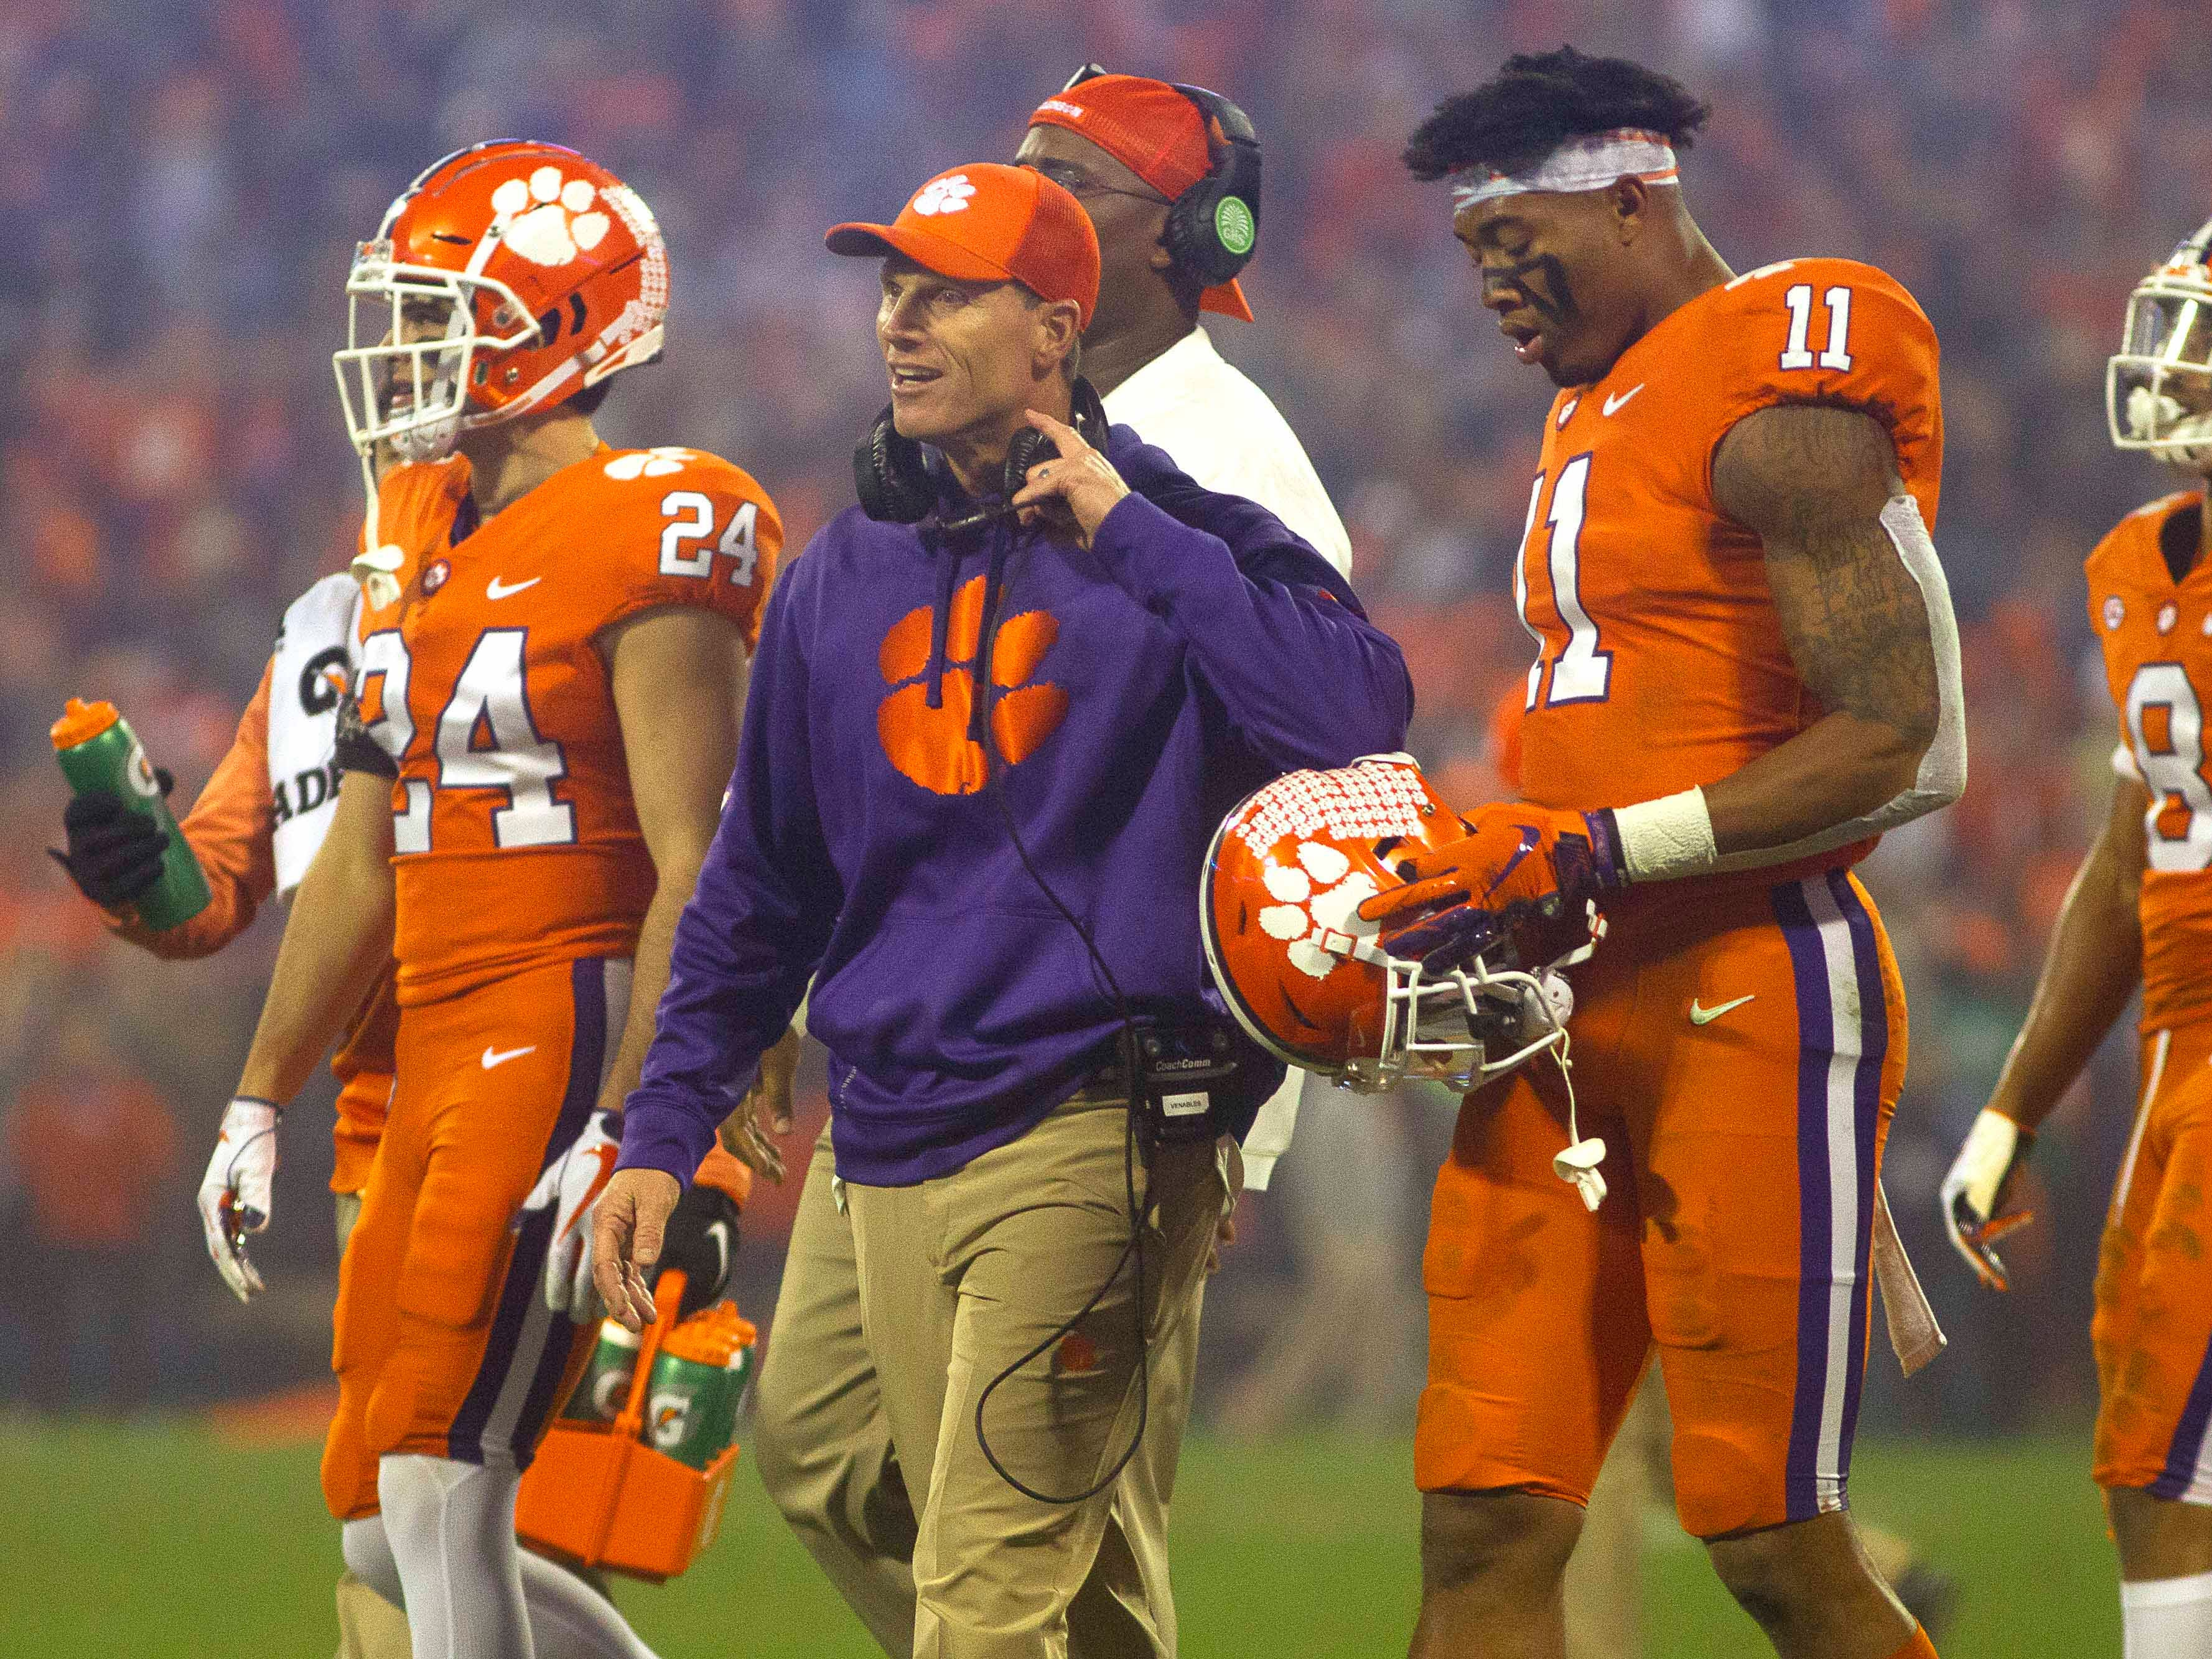 No. 2: Brent Venables, Clemson defensive coordinator: $2,201,500. While LSU's Dave Aranda is making more annually, Venables received a new contract this year that is set to have greater total value -- $11.6 million over five years. The deal also includes up to $100,000 a year in bonuses based on the team's defensive statistical performance.